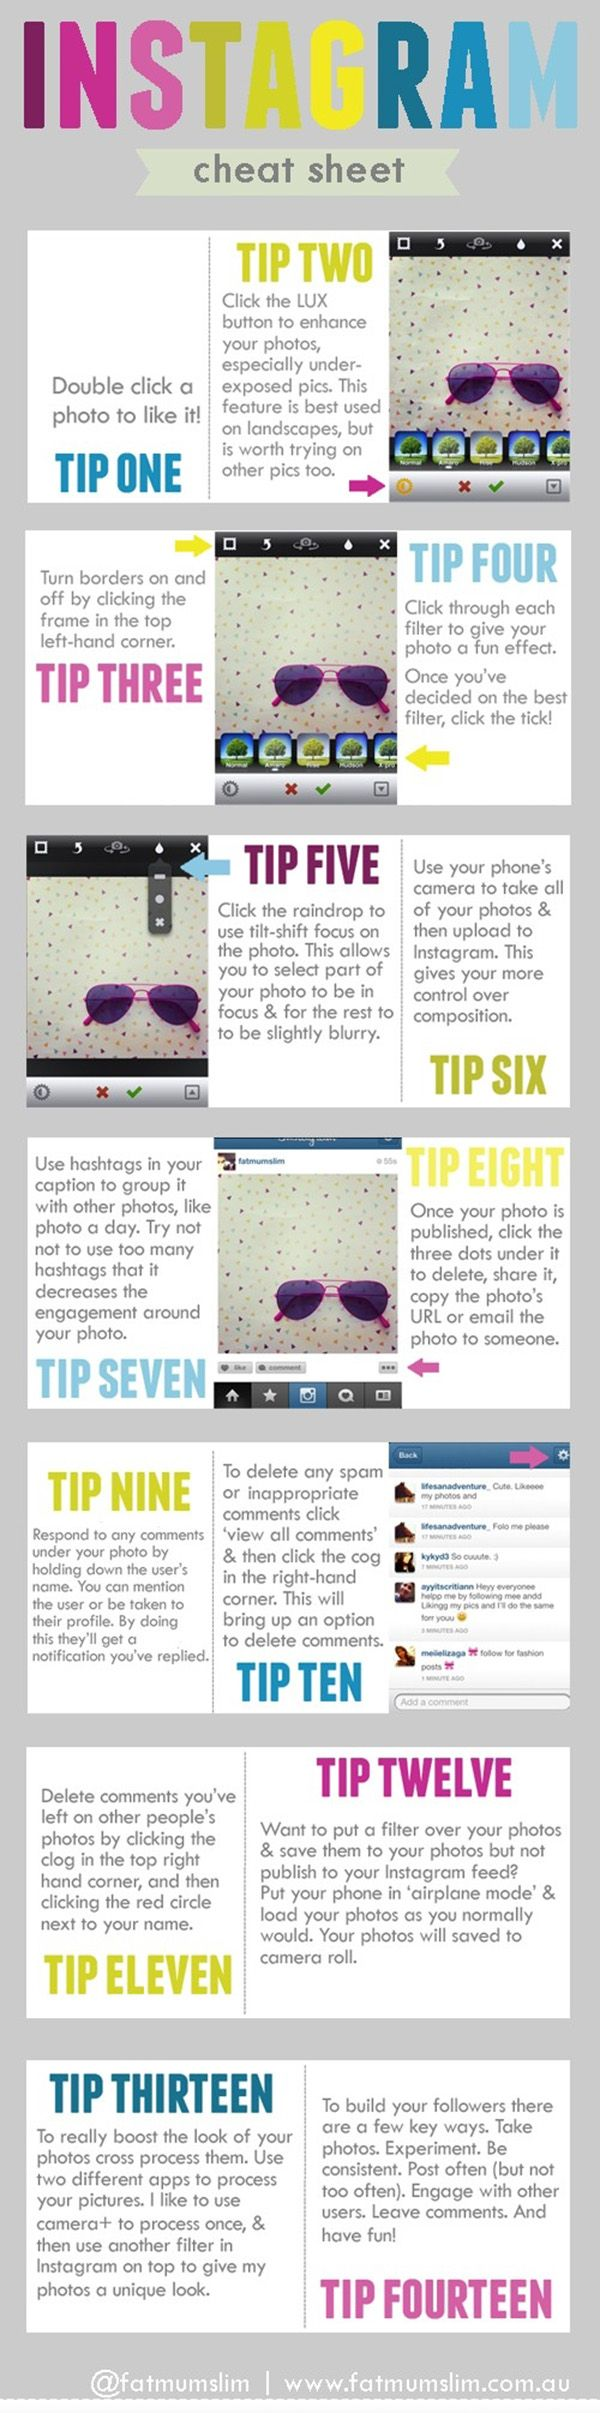 Instagram Cheat Sheet to Make Your our Social Media Marketing Strategy Work!